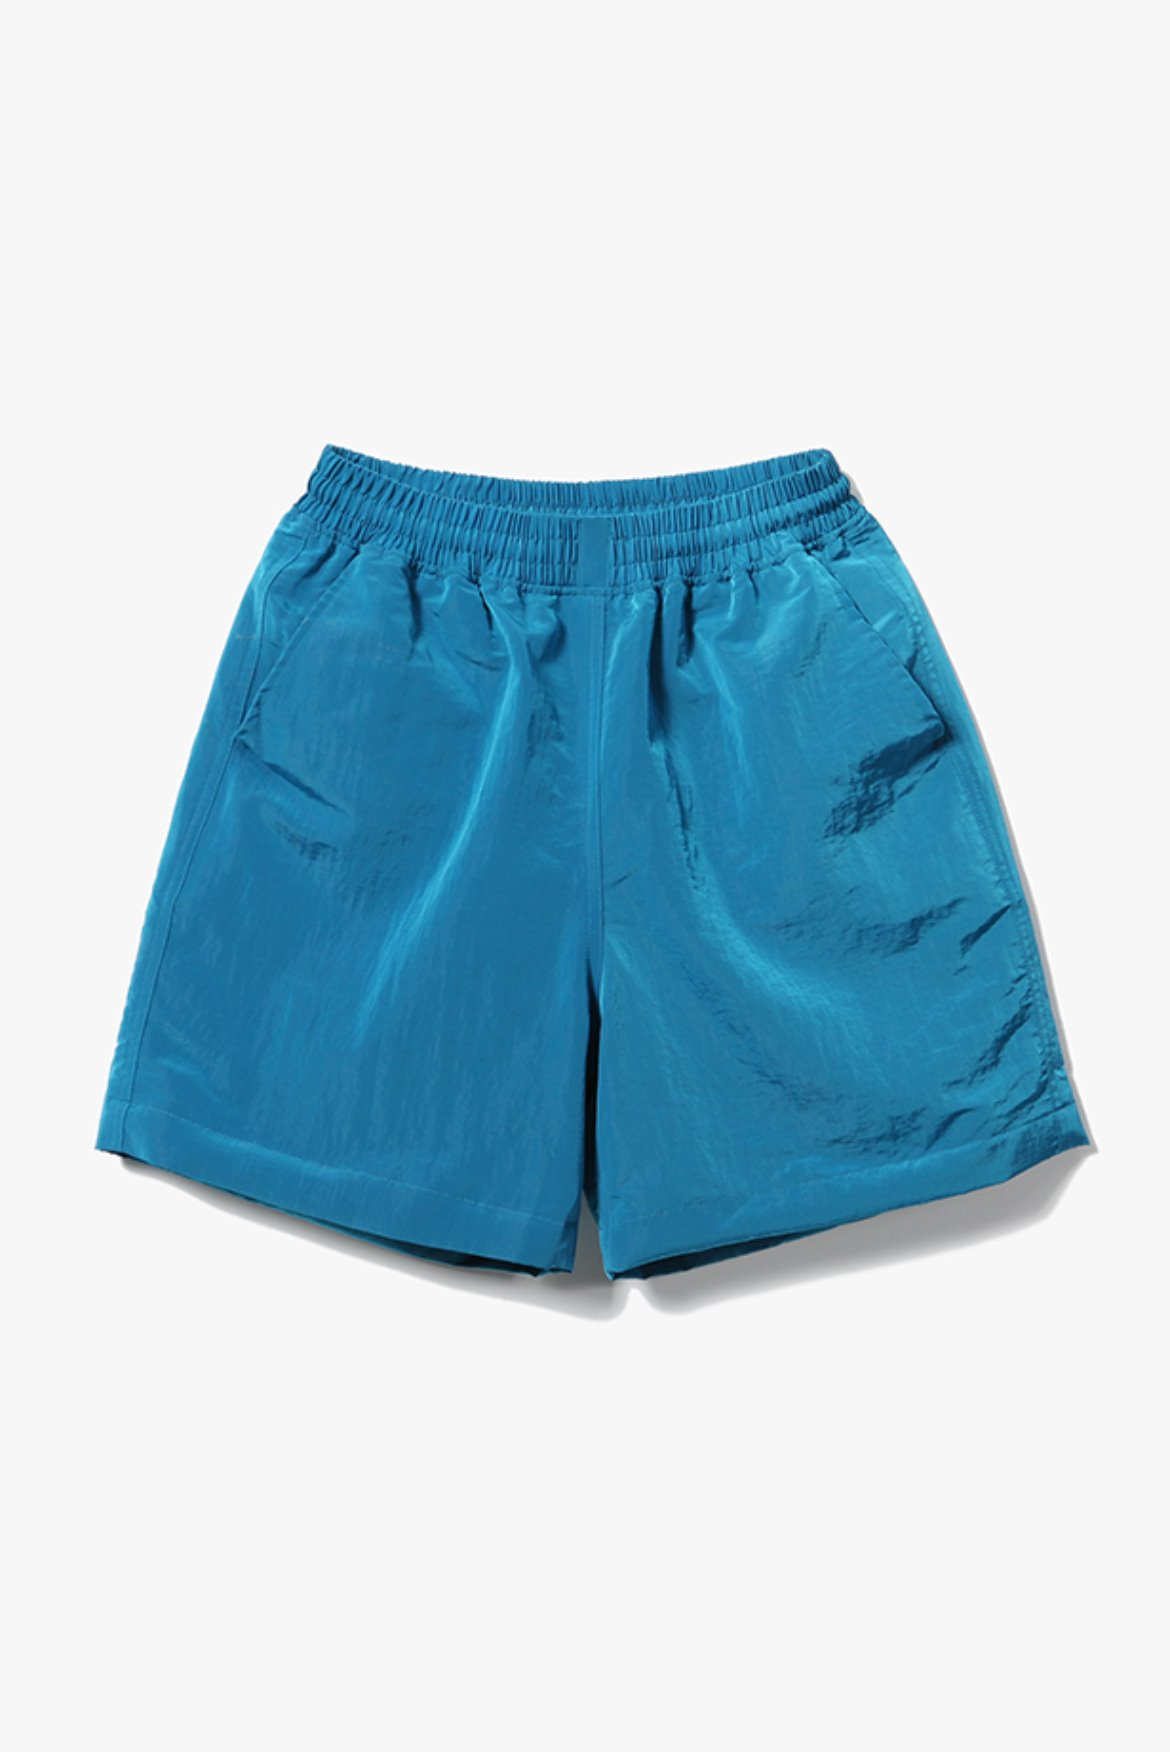 Metal Nylon Shorts [Teal Blue]